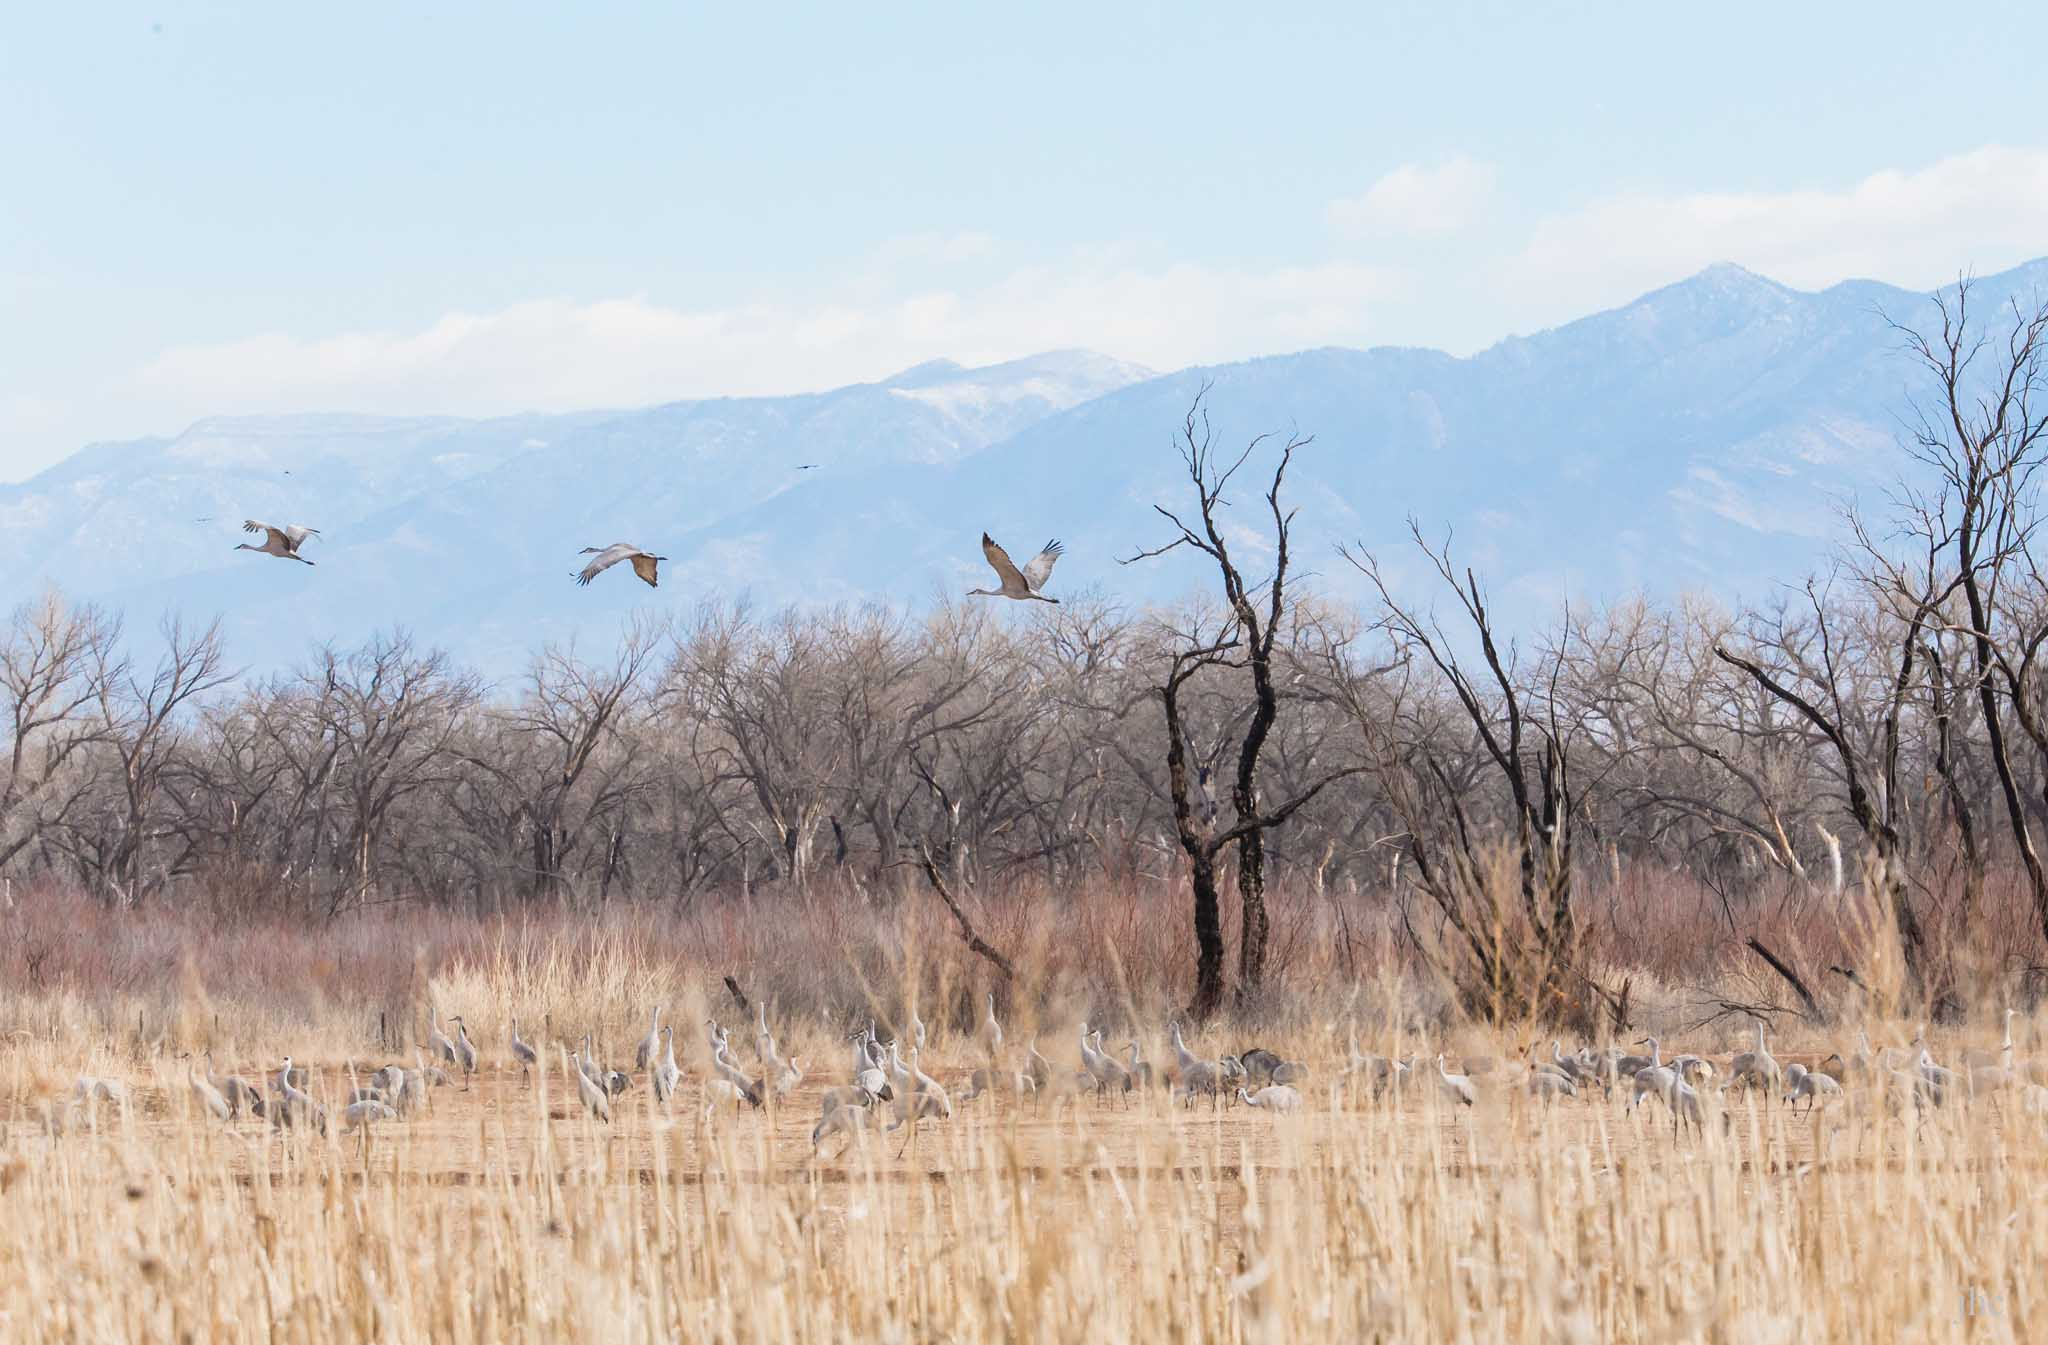 Sandhill Cranes flying out, Bernardo Wildlife Management Area, Bernardo NM, February 8, 2014